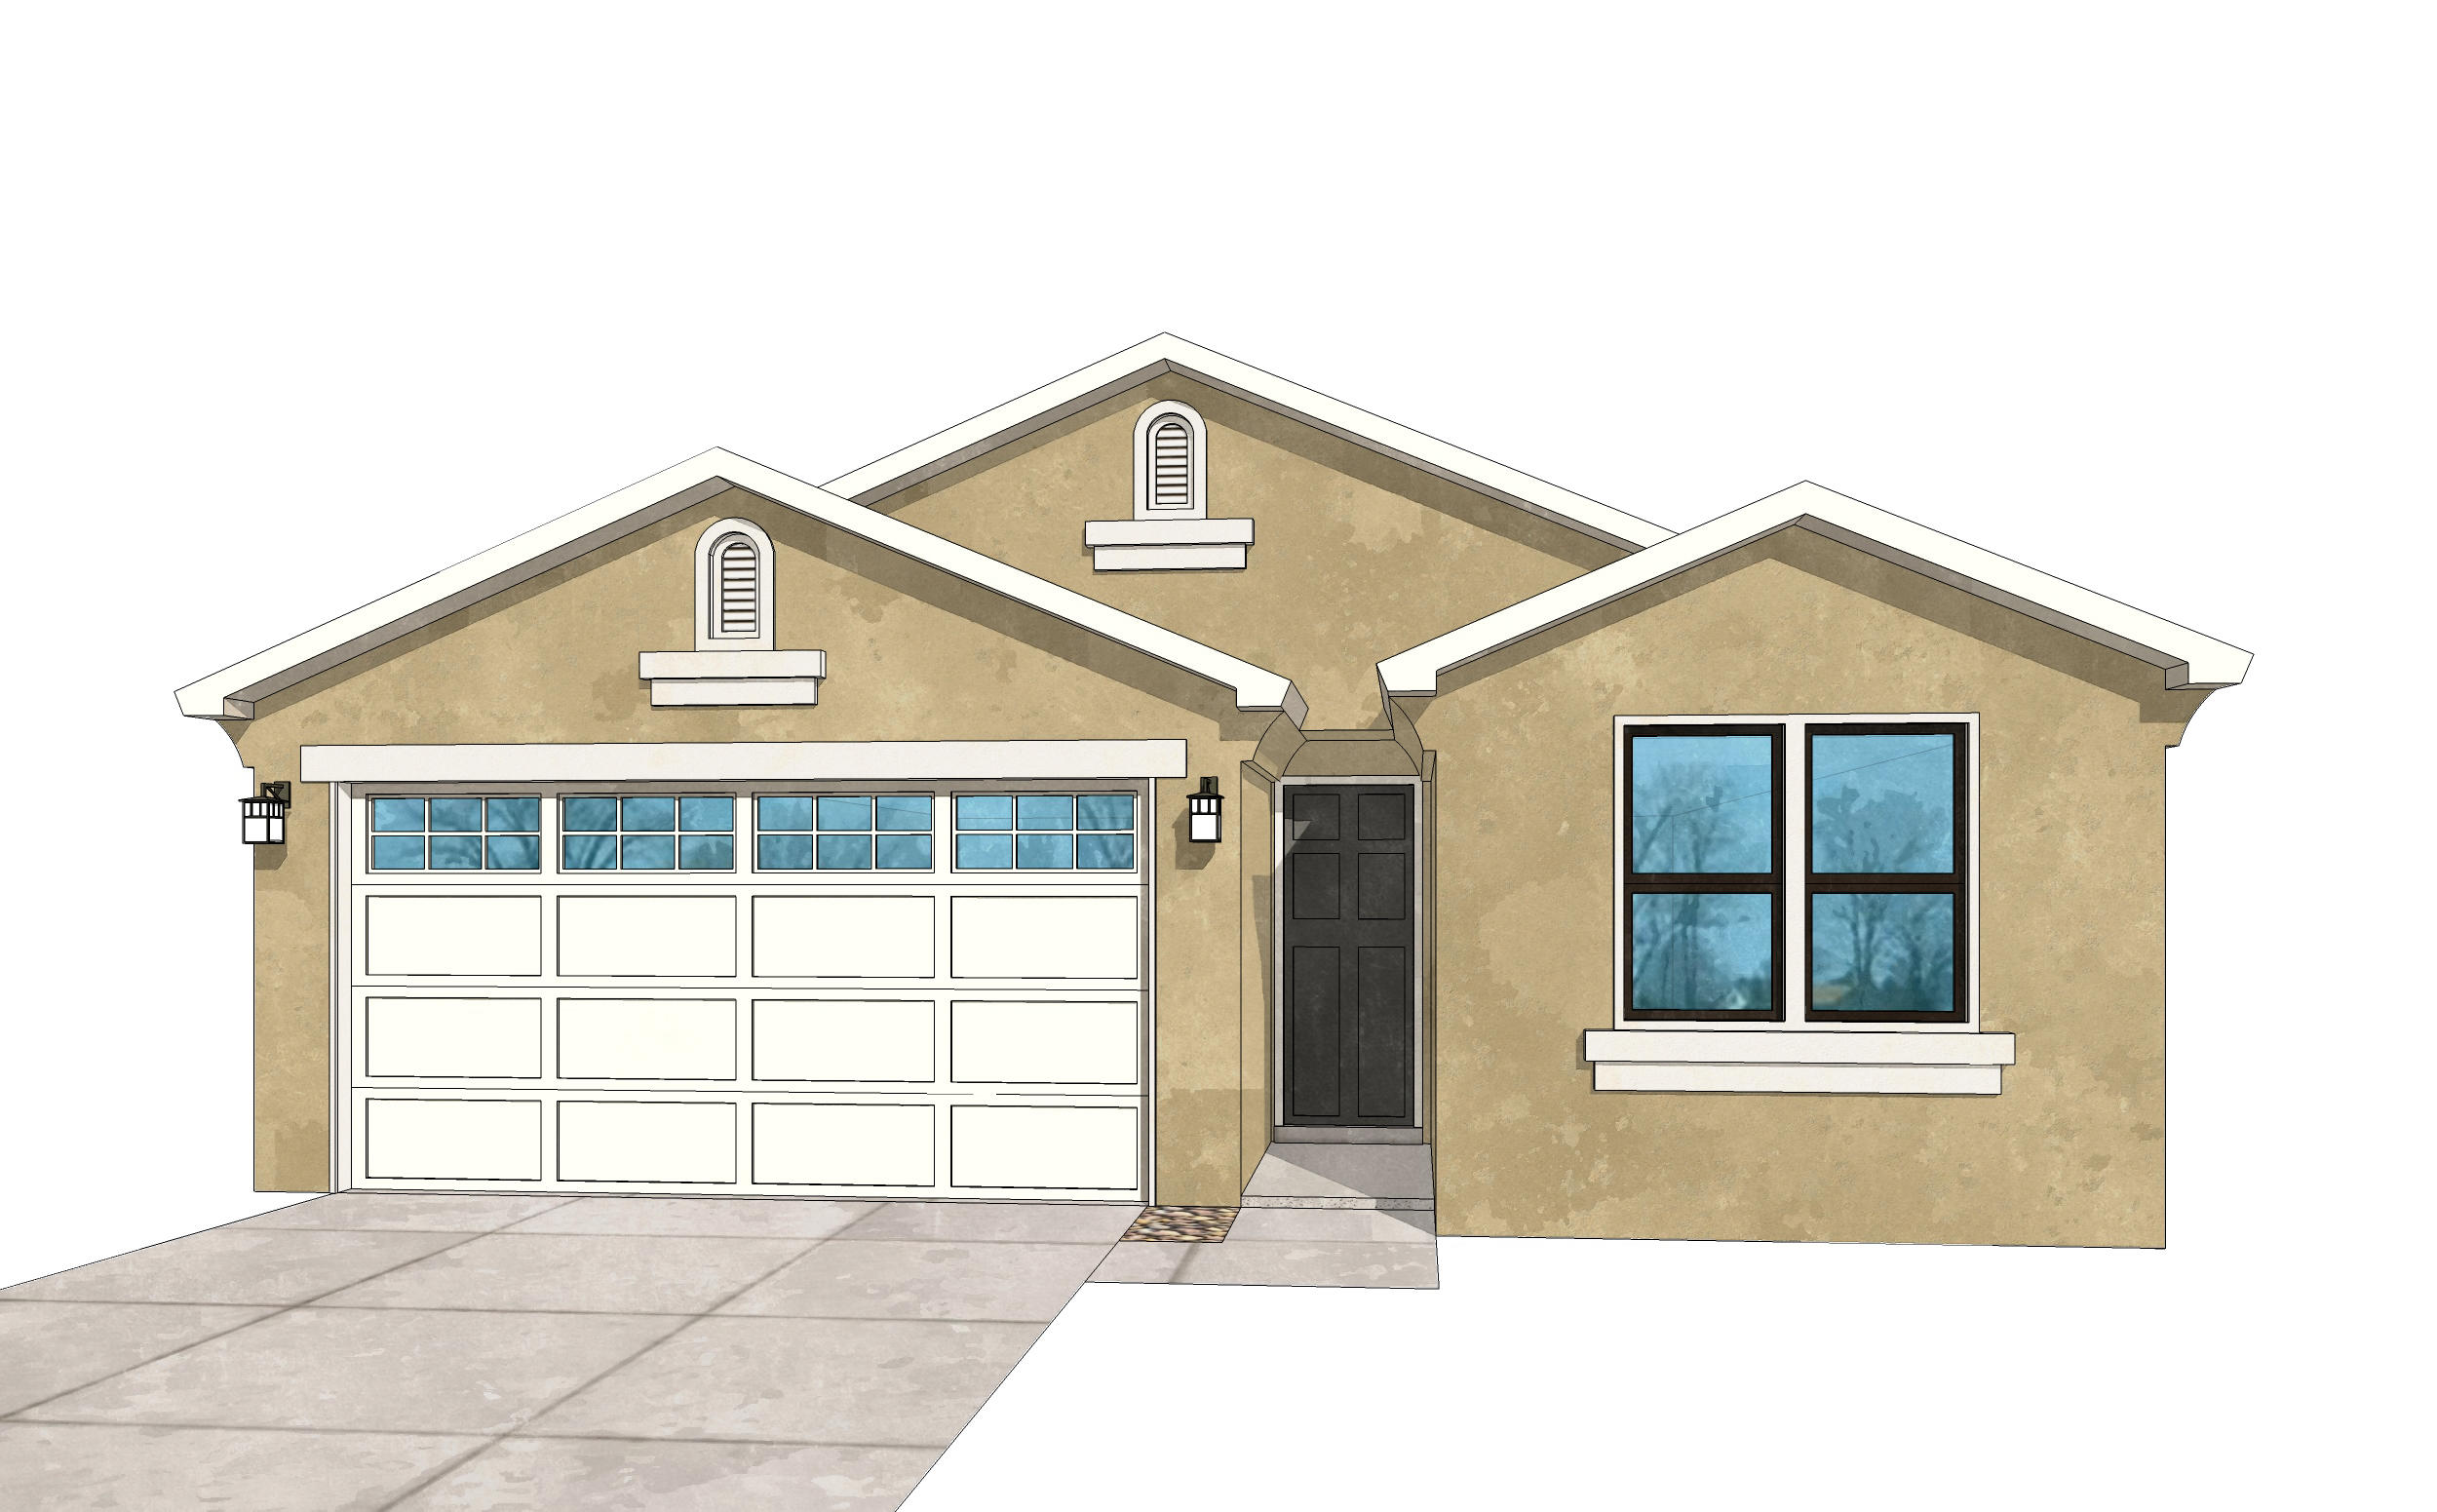 UNDER CONSTRUCTION.Pictures are model representations. Colors and selections may vary. Currently under construction to be ready Sep. Living area features double sliders opening to covered patio with gas FP. Granite in Kitchen & baths, ceramic tile surrounds in shower and bath, Samsung SS appliances including gas stove, microwave, SxS refrigerator, dishwasher and washer and dryer (in white). Blinds throughout, 9' ceilings w/10' coffers in LR and master, ceramic tile floors in entry, kitchen, baths,  laundry, dining area. 8' tall oversized garage door with opener, recessed LED disc lighting. Energy efficient- Build Green NM Silver rated, LowE, vinyl dual pane windows, 95% efficient gas furnace, programmable thermostat. Dual wall and rain head shower heads in master. Don't miss this!